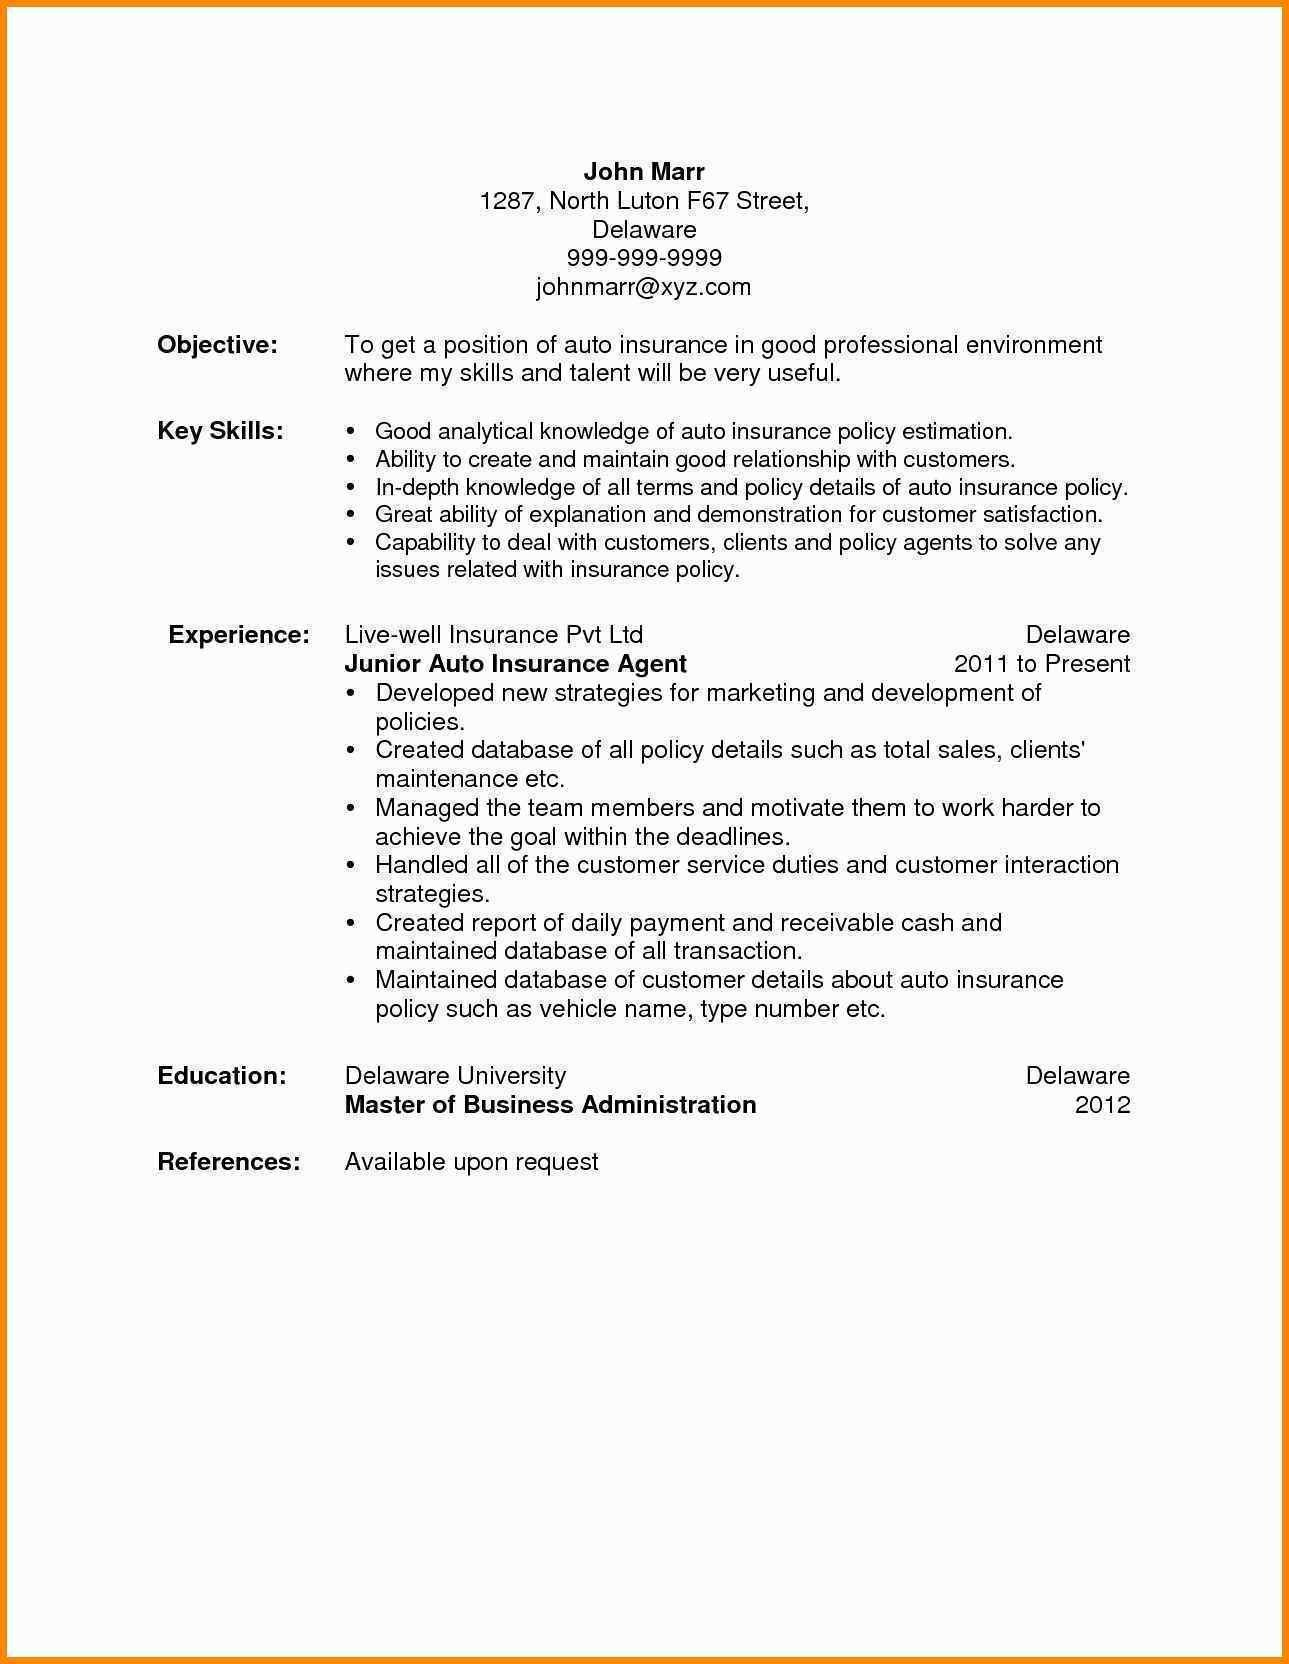 life insurance policy template the truth about is to agent resume sample writers atlanta Resume Life Insurance Agent Resume Sample